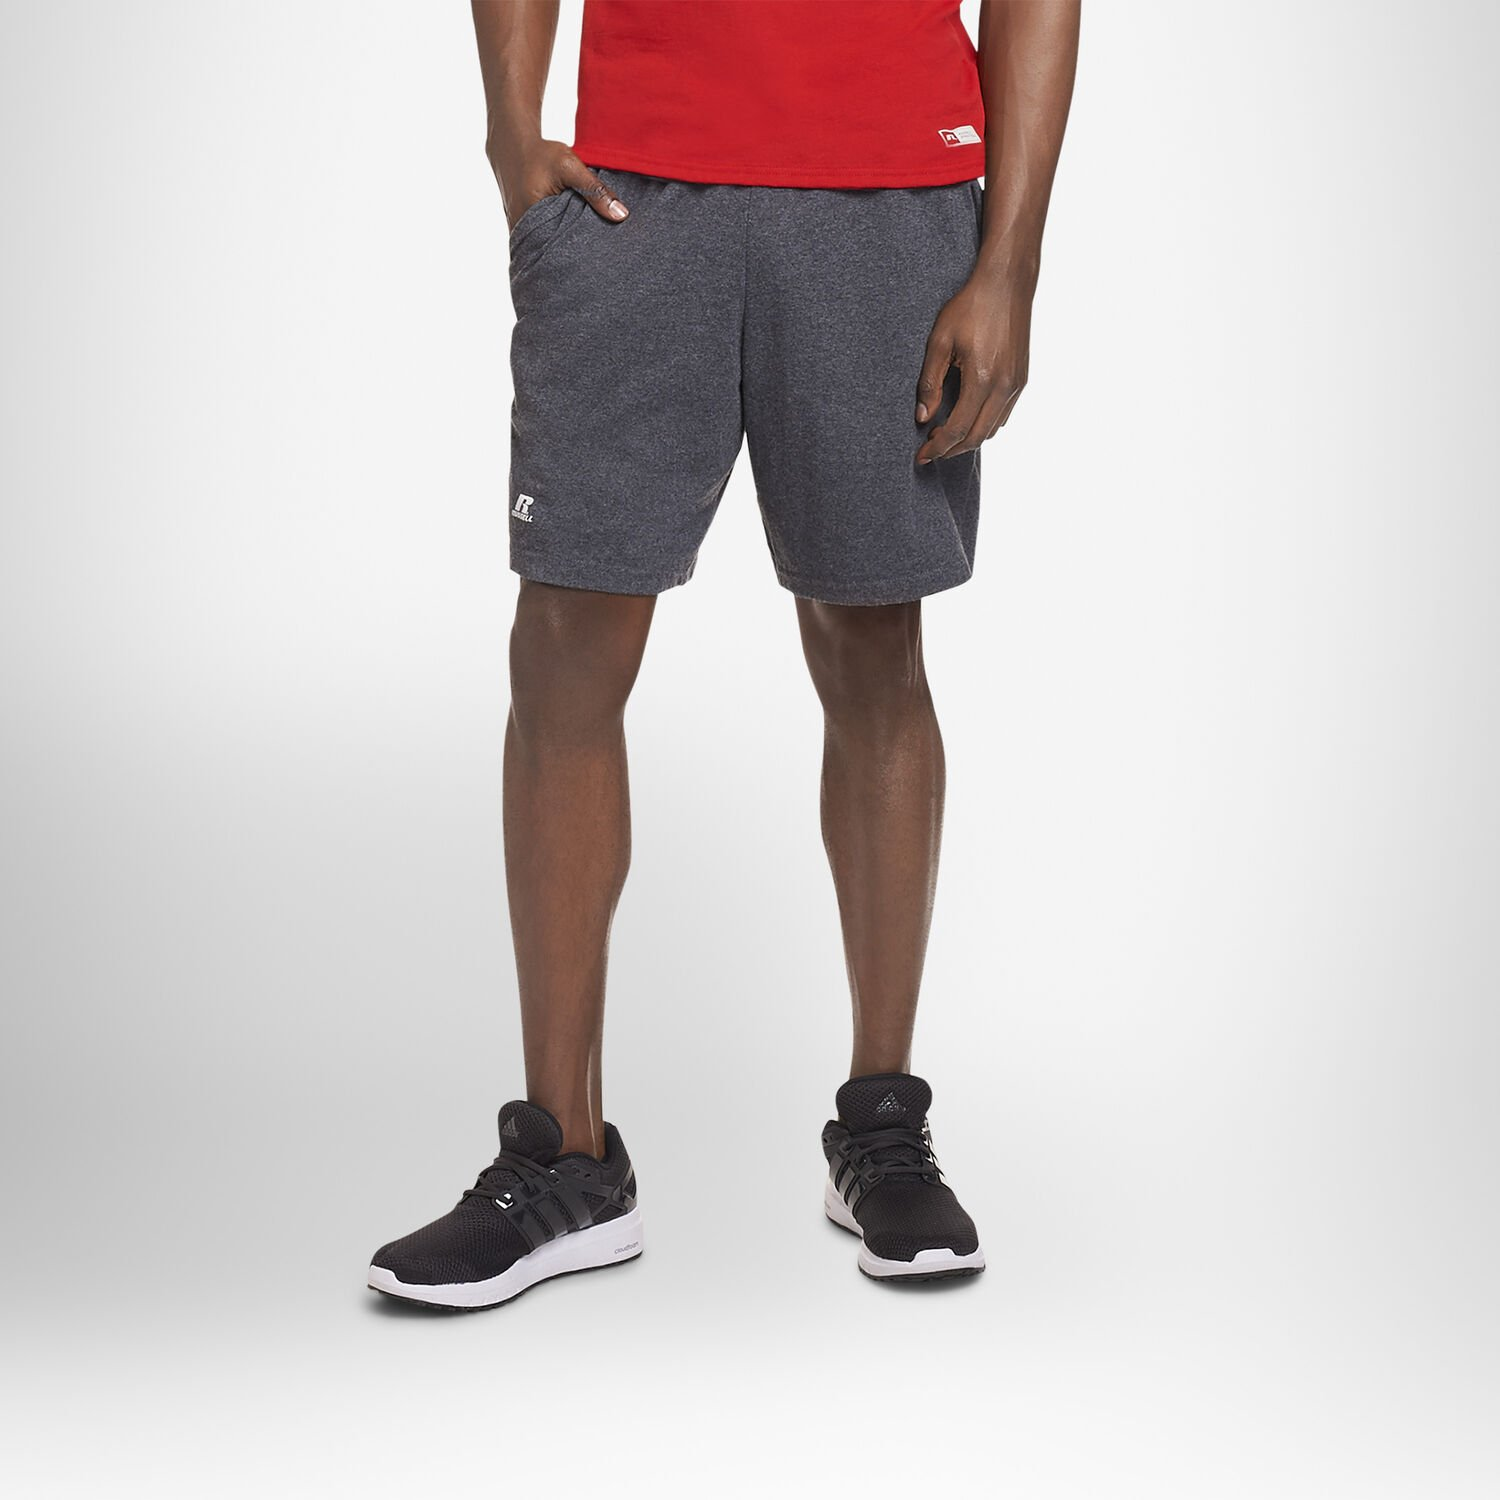 a9d26ef7df9 Men's Basic Cotton Pocket Shorts - Russell US | Russell Athletic